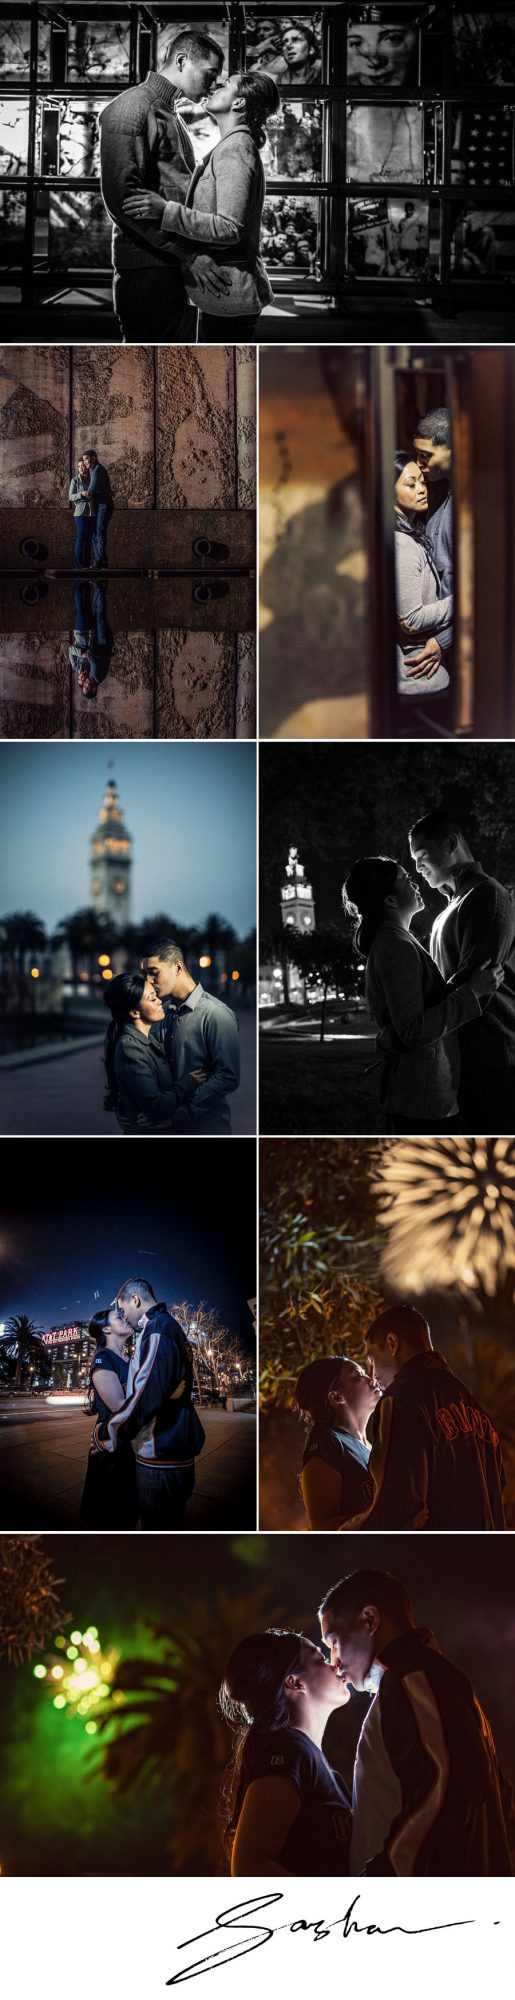 san francisco engagement session att park embarcadero ferry building